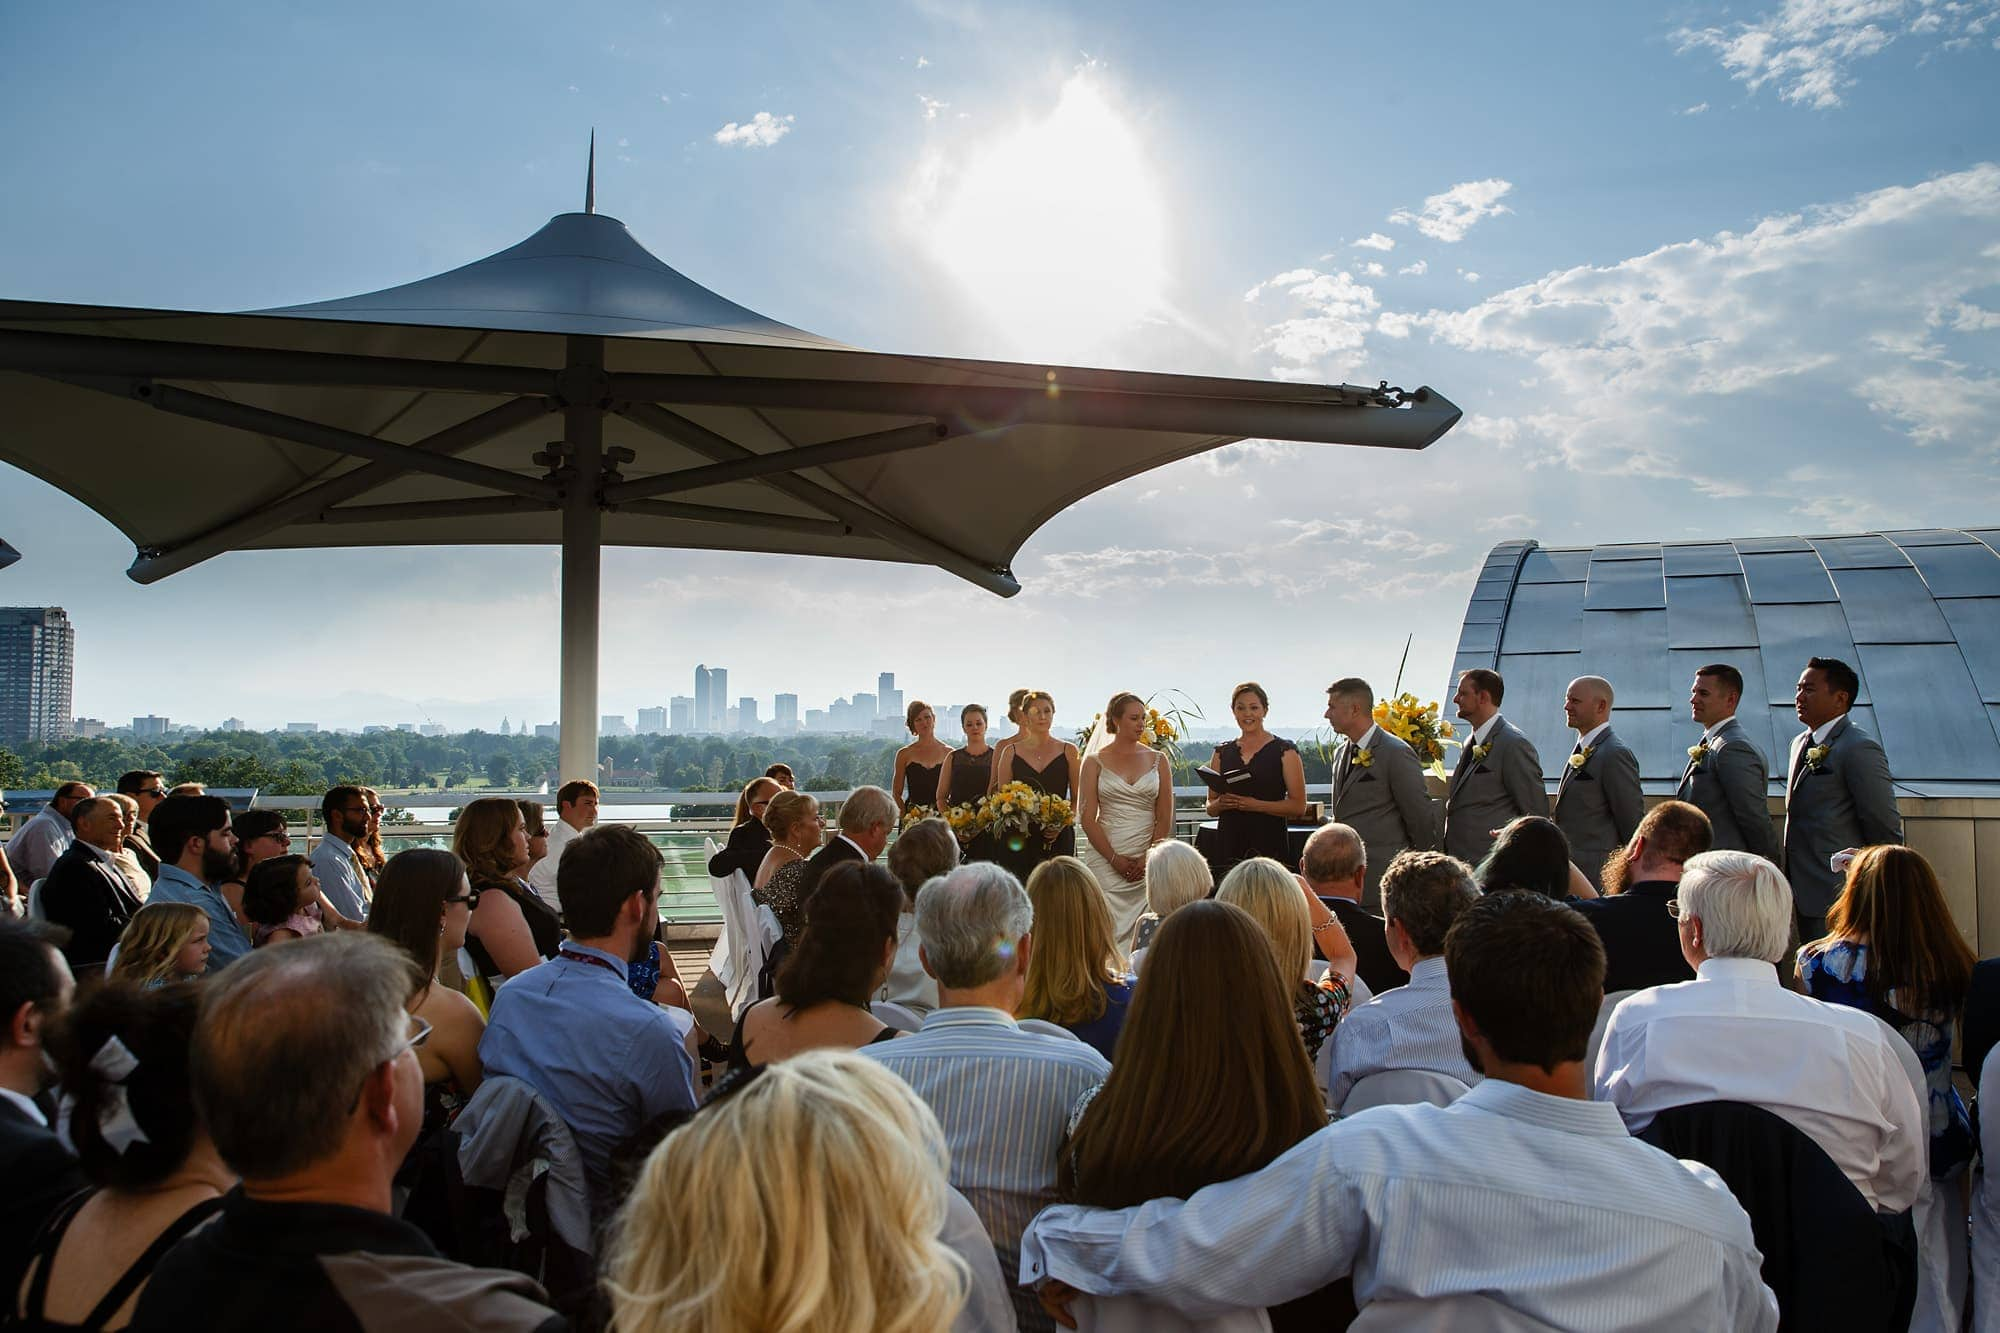 A wedding ceremony takes place on the rooftop deck of the Denver Museum of Nature and Science building as the Denver skyline and mountains can be seen to the west